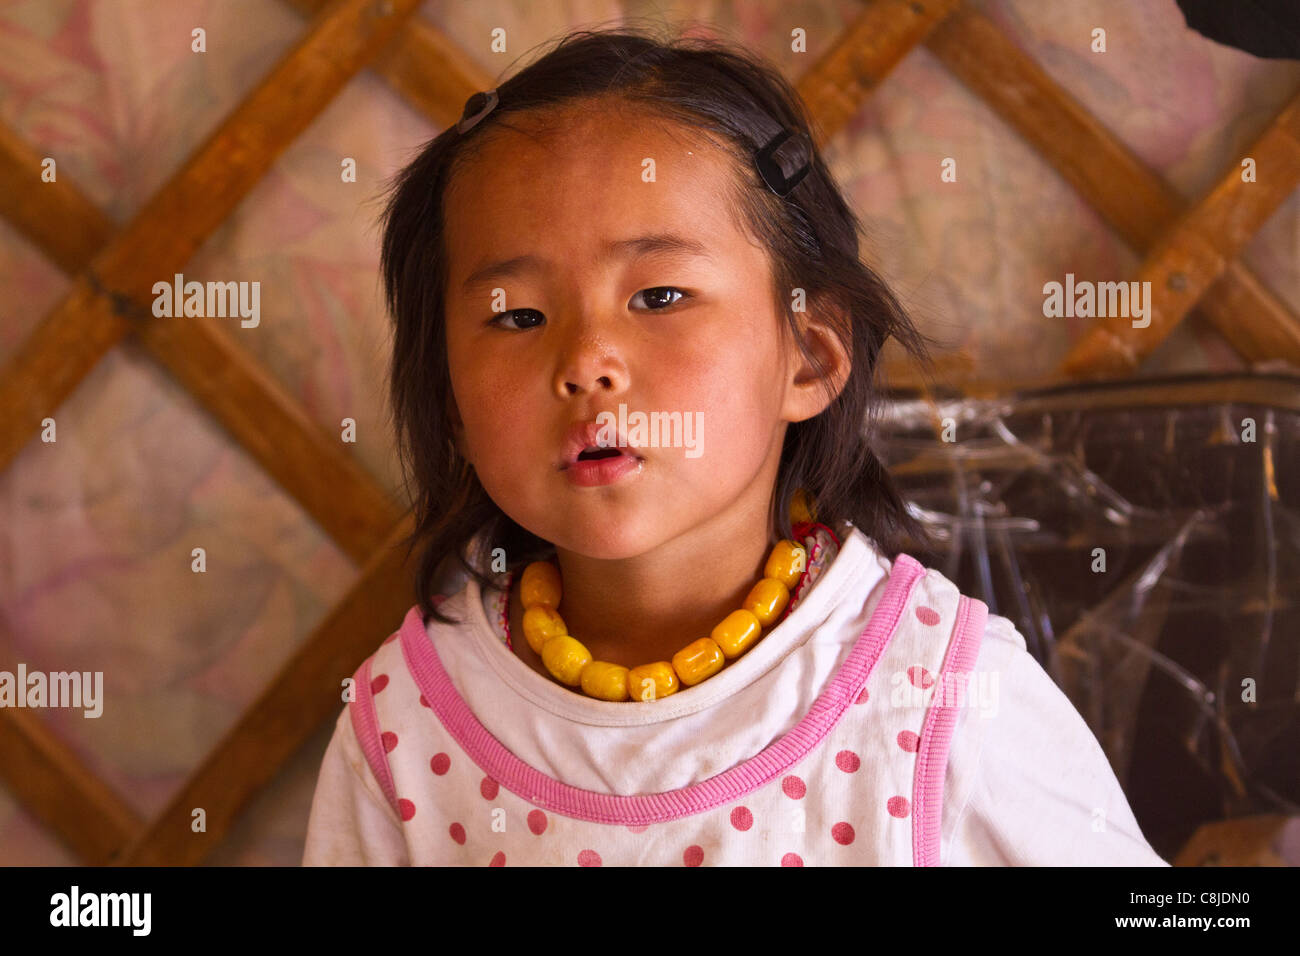 Young mongolian girl in the family ger in Mongolia. - Stock Image